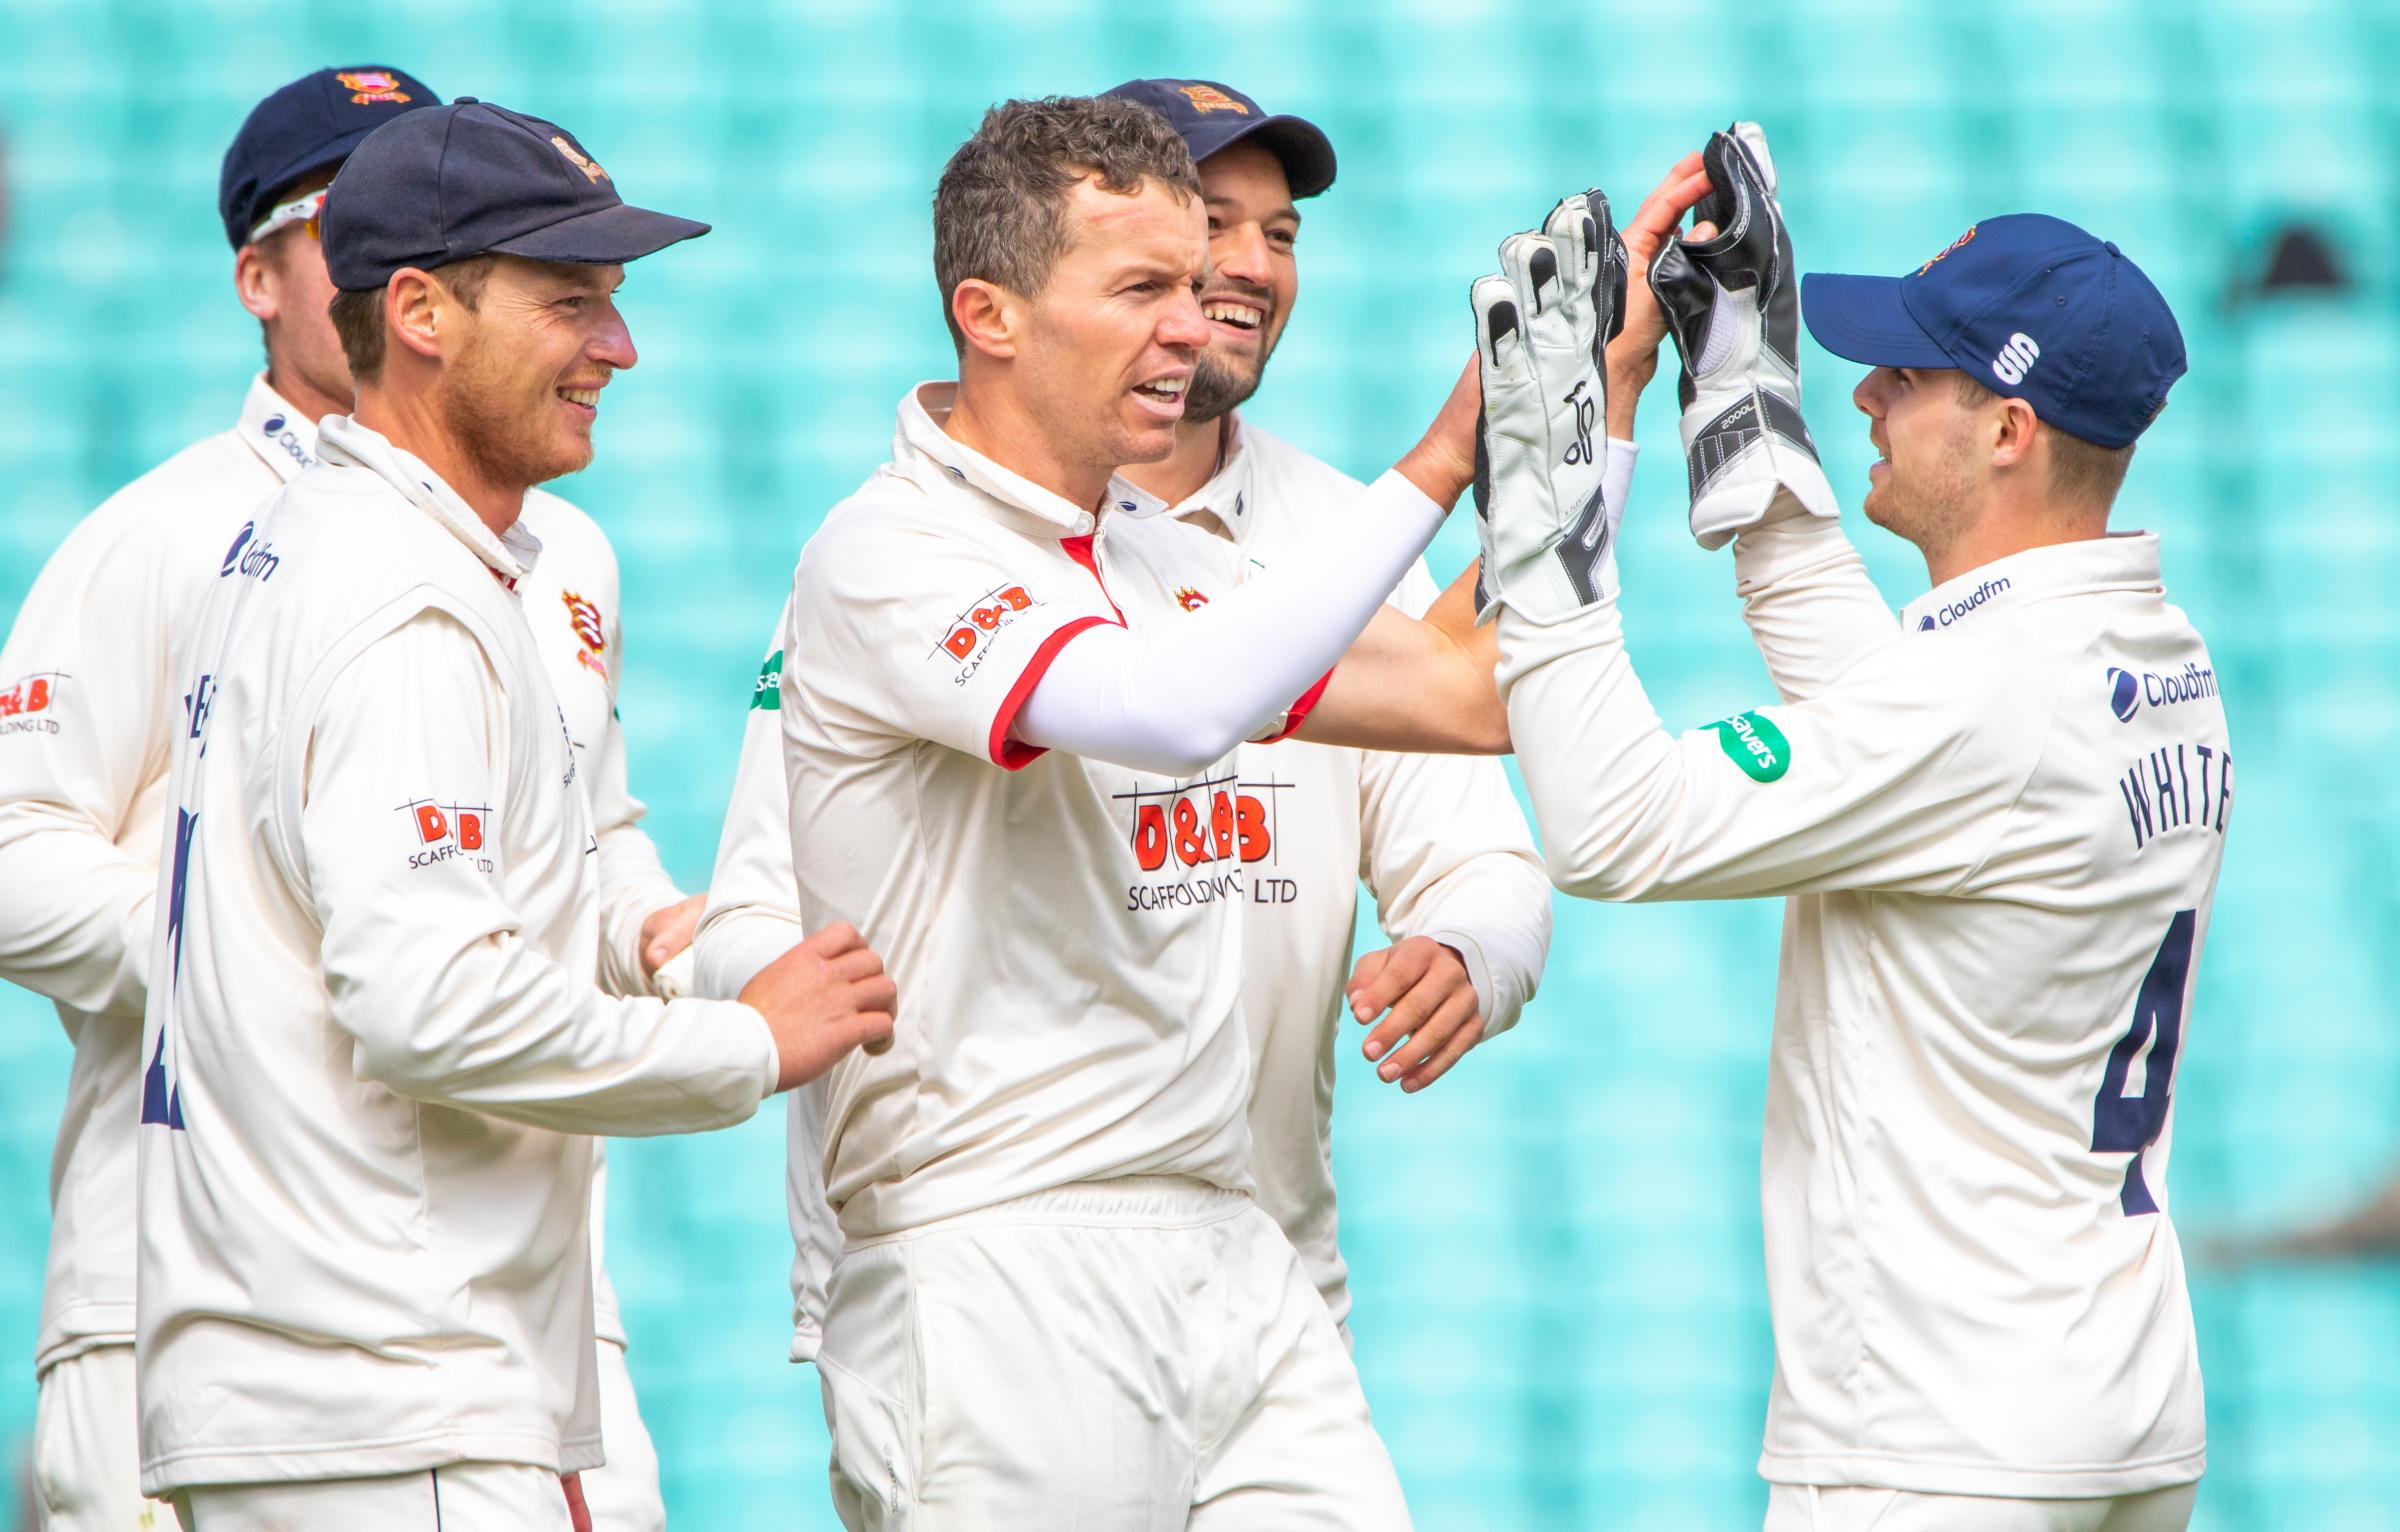 WICKET-TAKER - Peter Siddle is congratulated Picture: BEN PRIOR